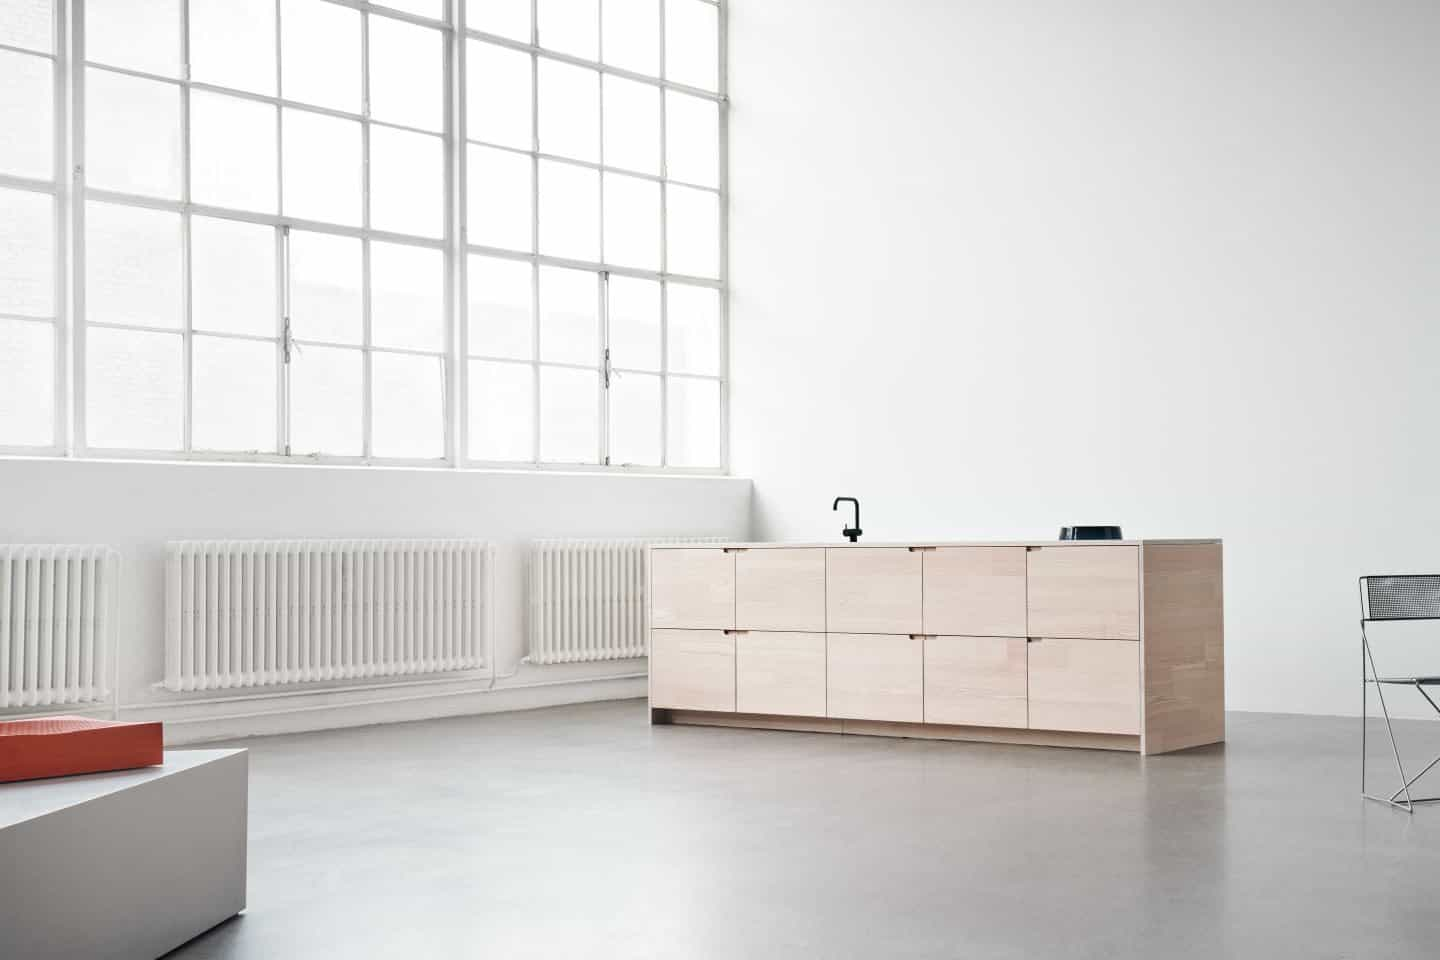 Reform operates a Circular Economy model by collaborating with Lendager Group to reuse the surplus wood from Danish flooring manufacturer Dinesen to create their UP kitchen.